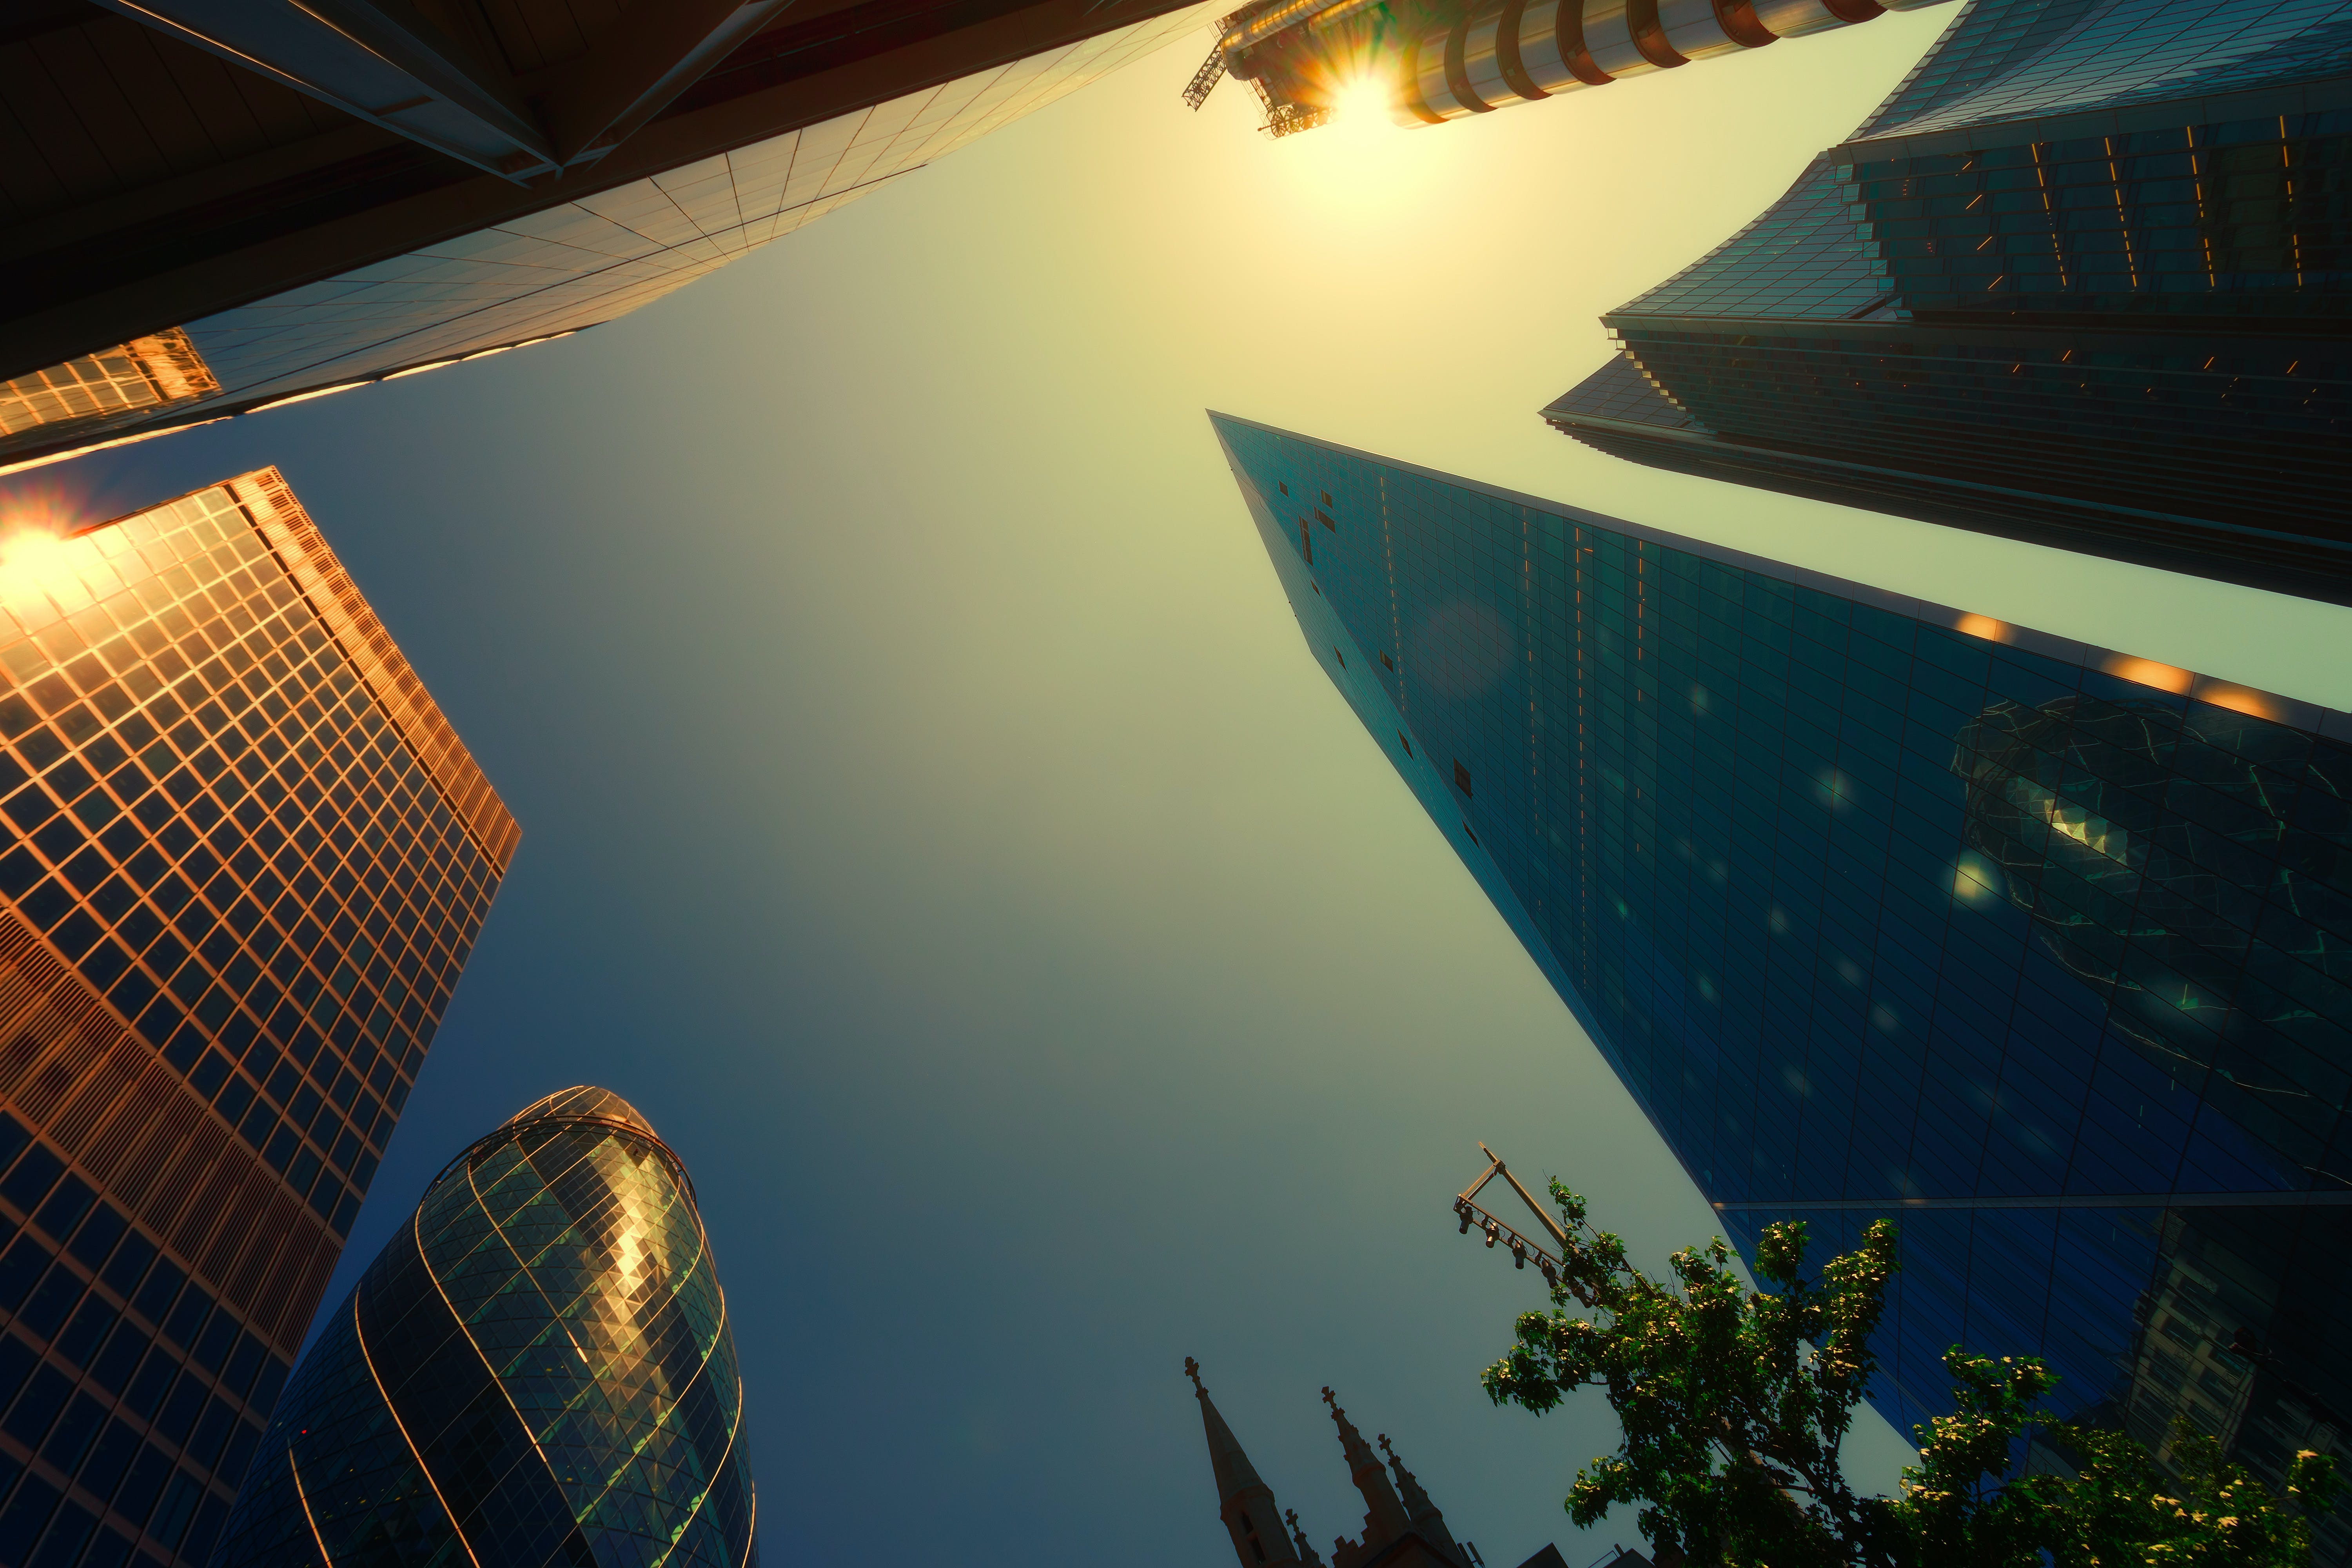 Worm's Eyeview Photography of High Rise Buildings